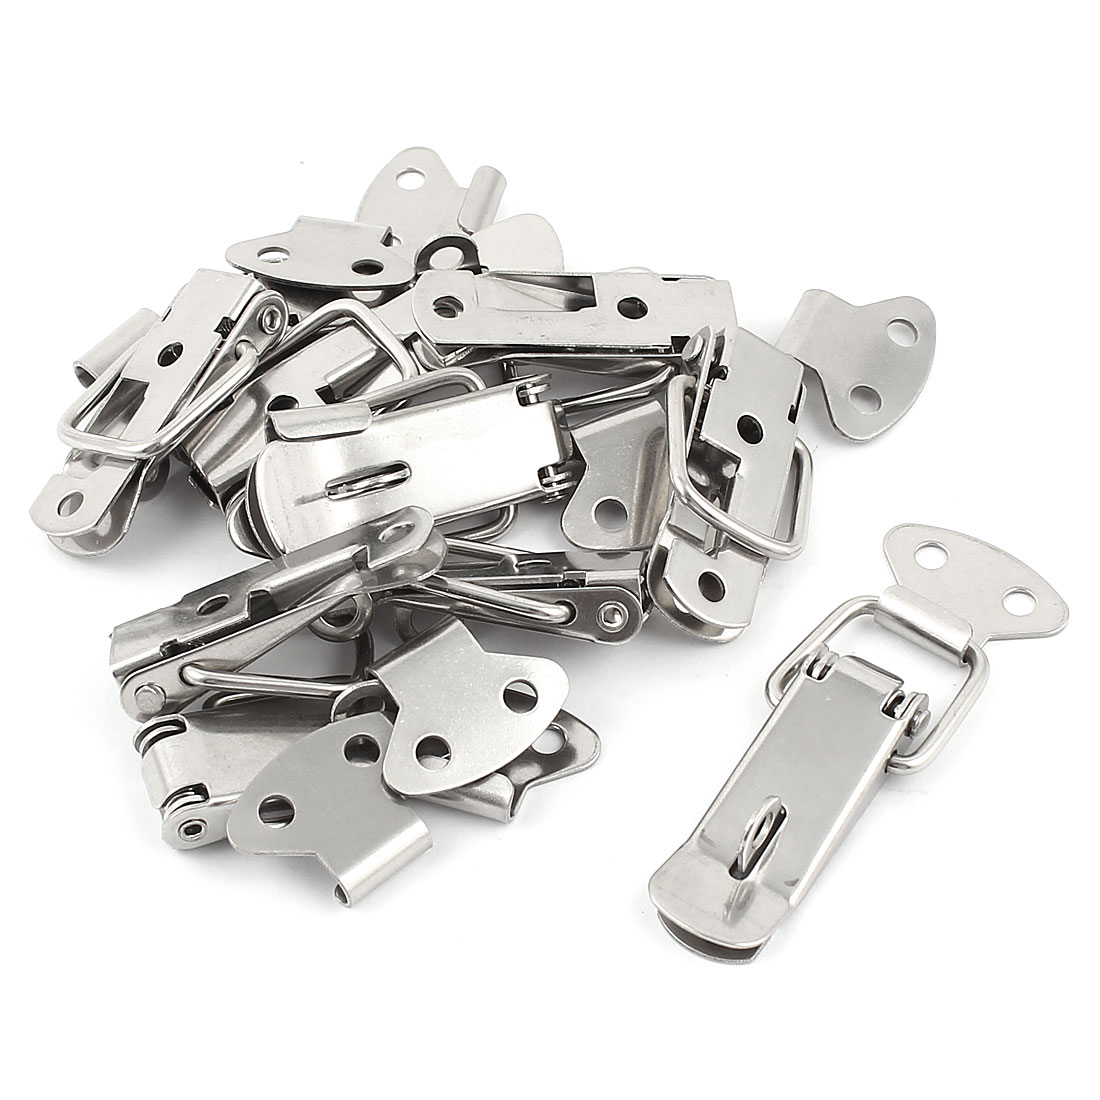 10 Pcs Steel Spring Draw Toggle Latch Catch for Cases Boxes Chests